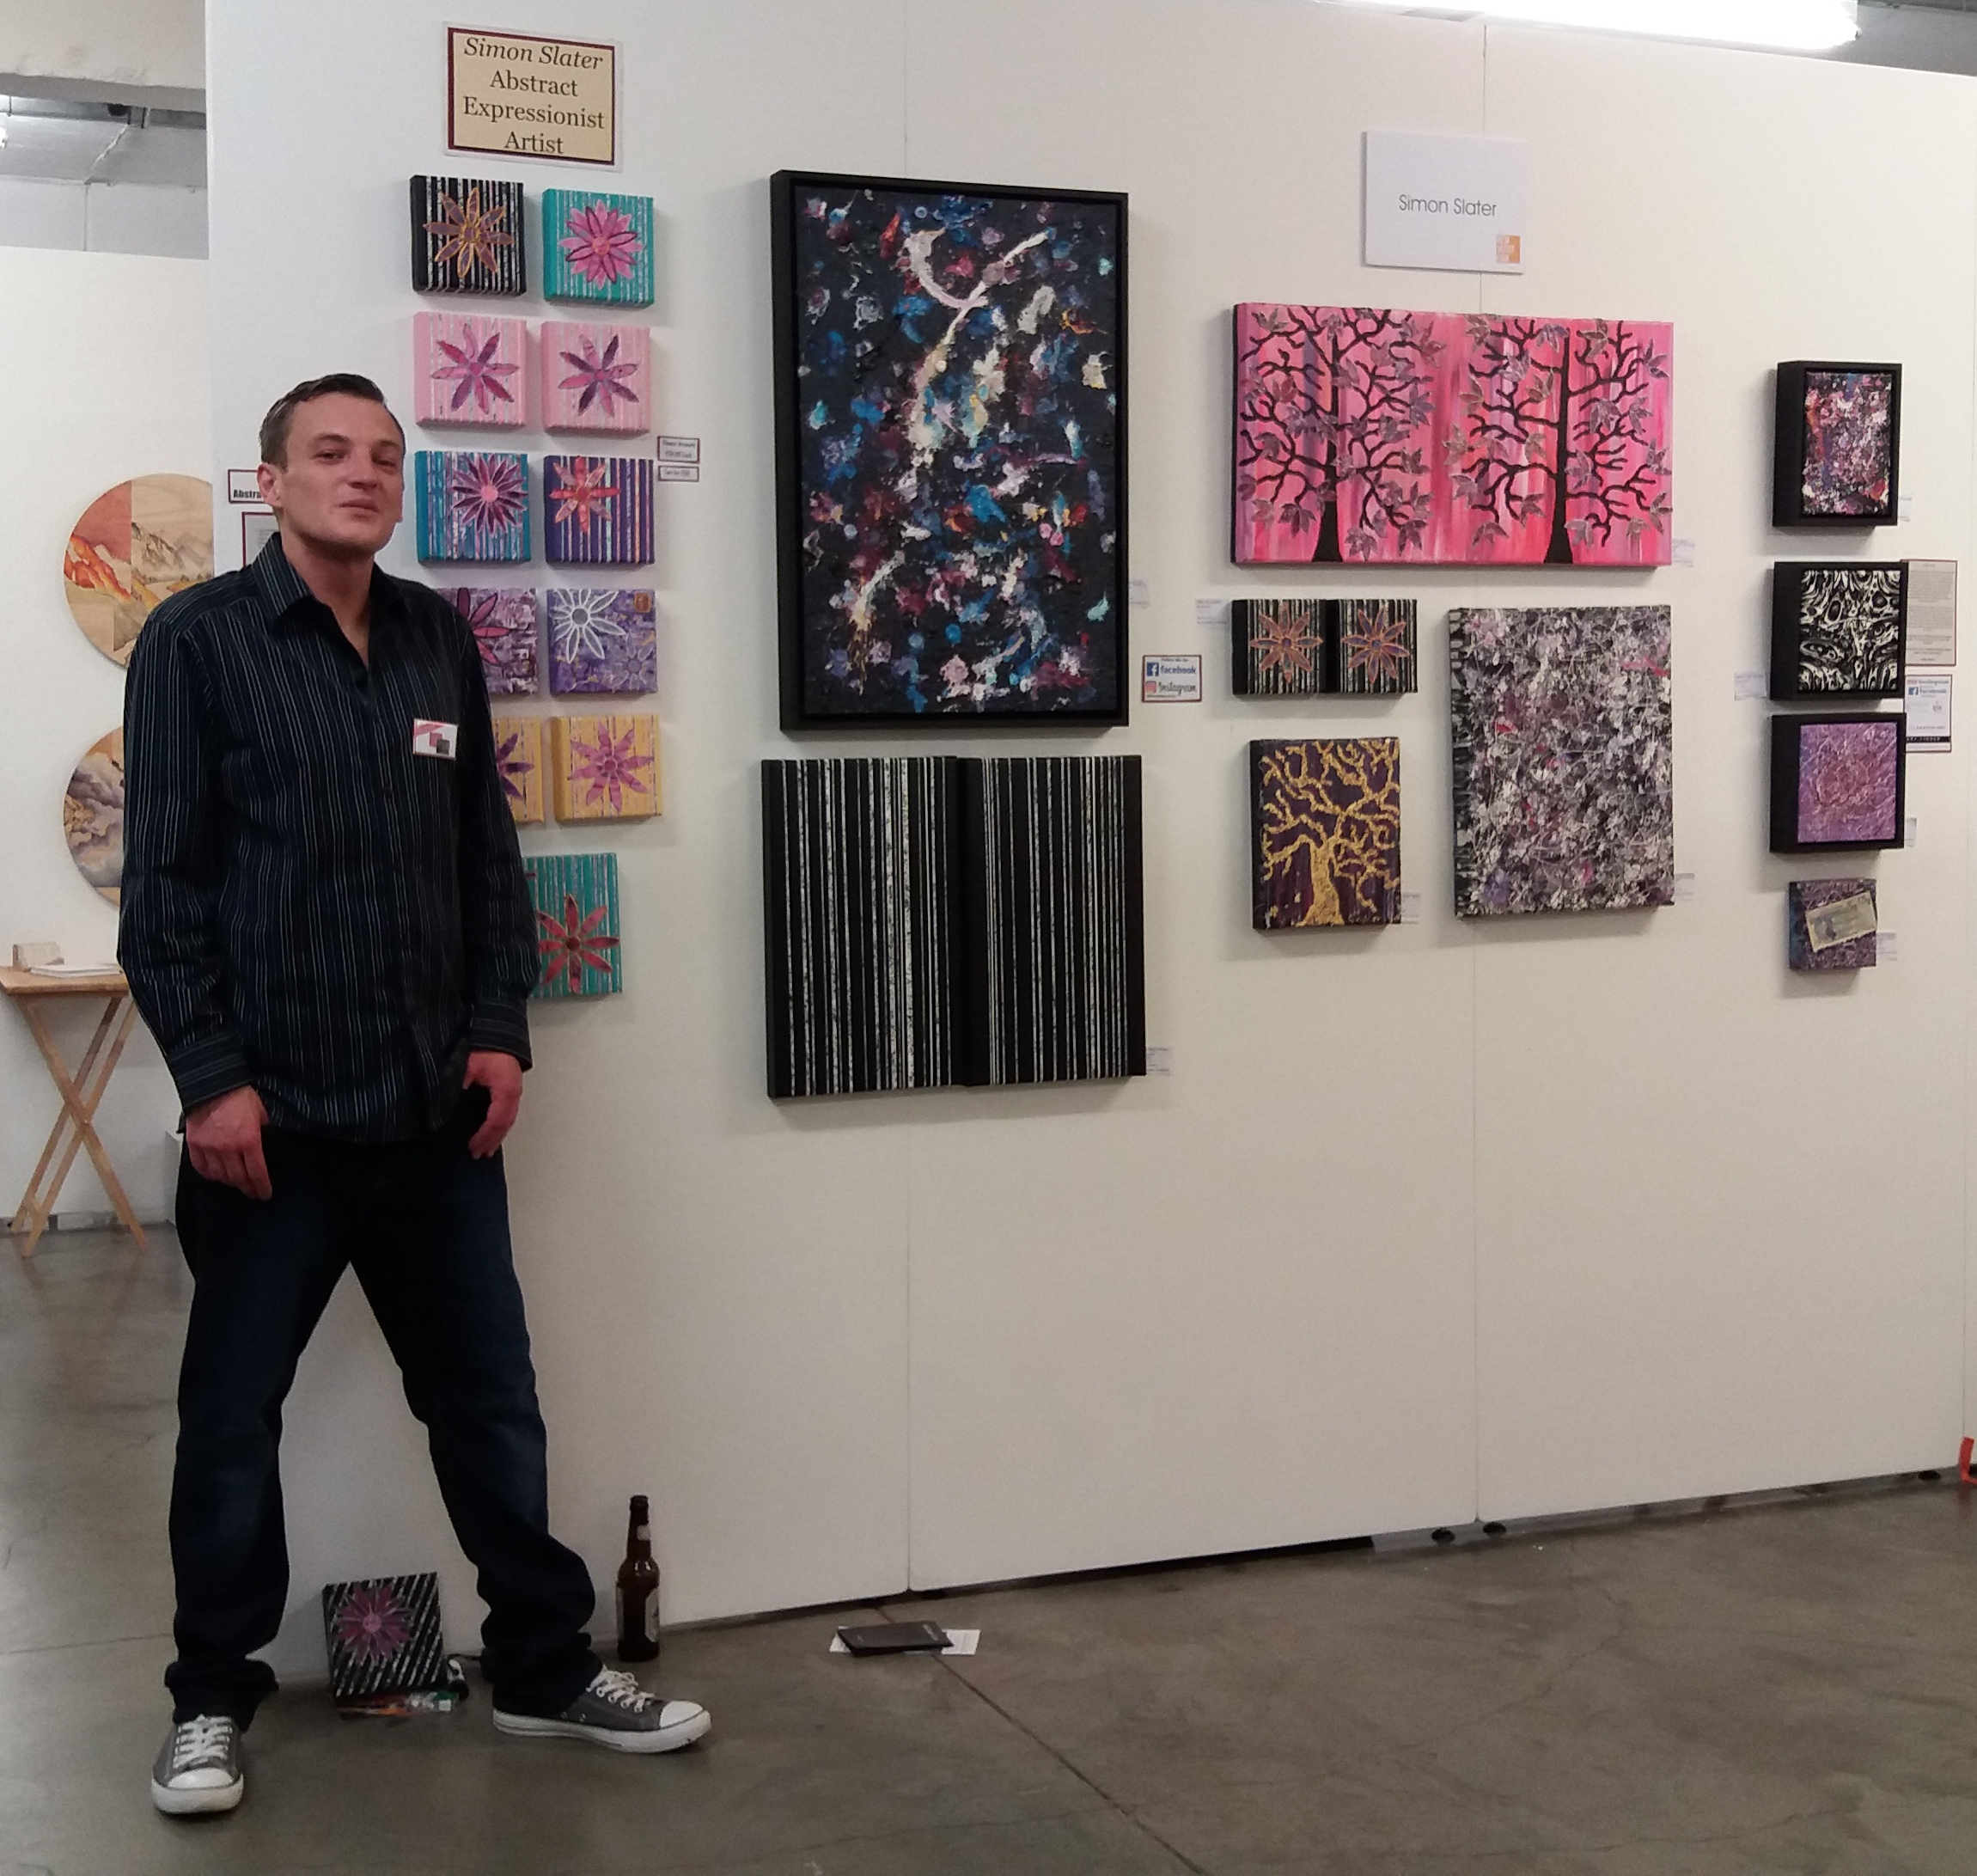 Simon Slater Art Exhibition.jpg